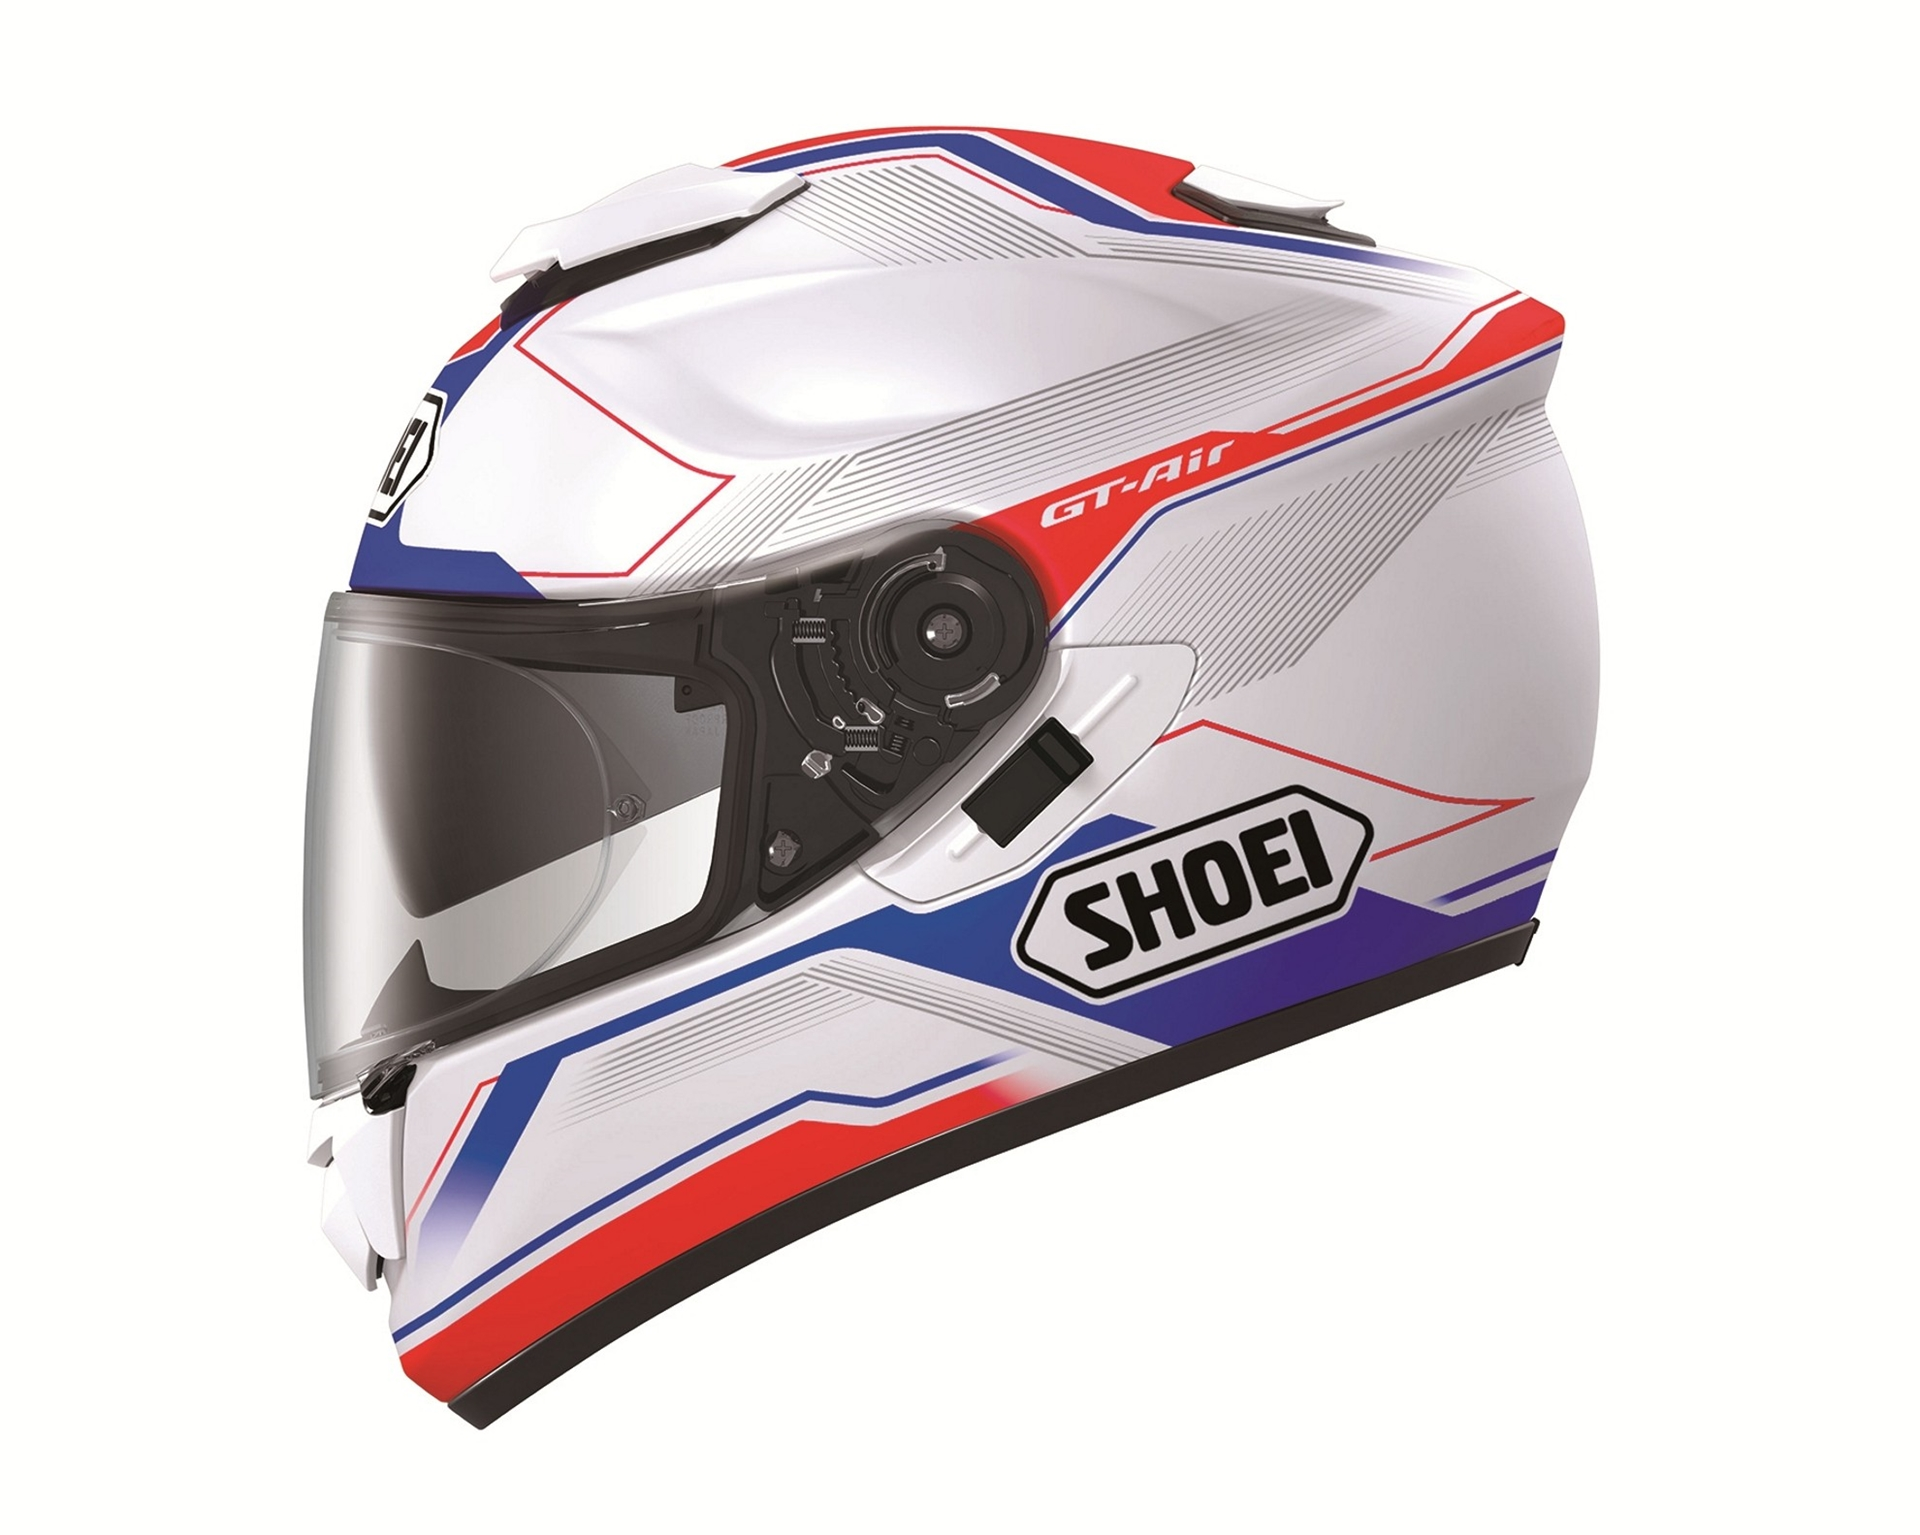 Shoei Motorcycle Live